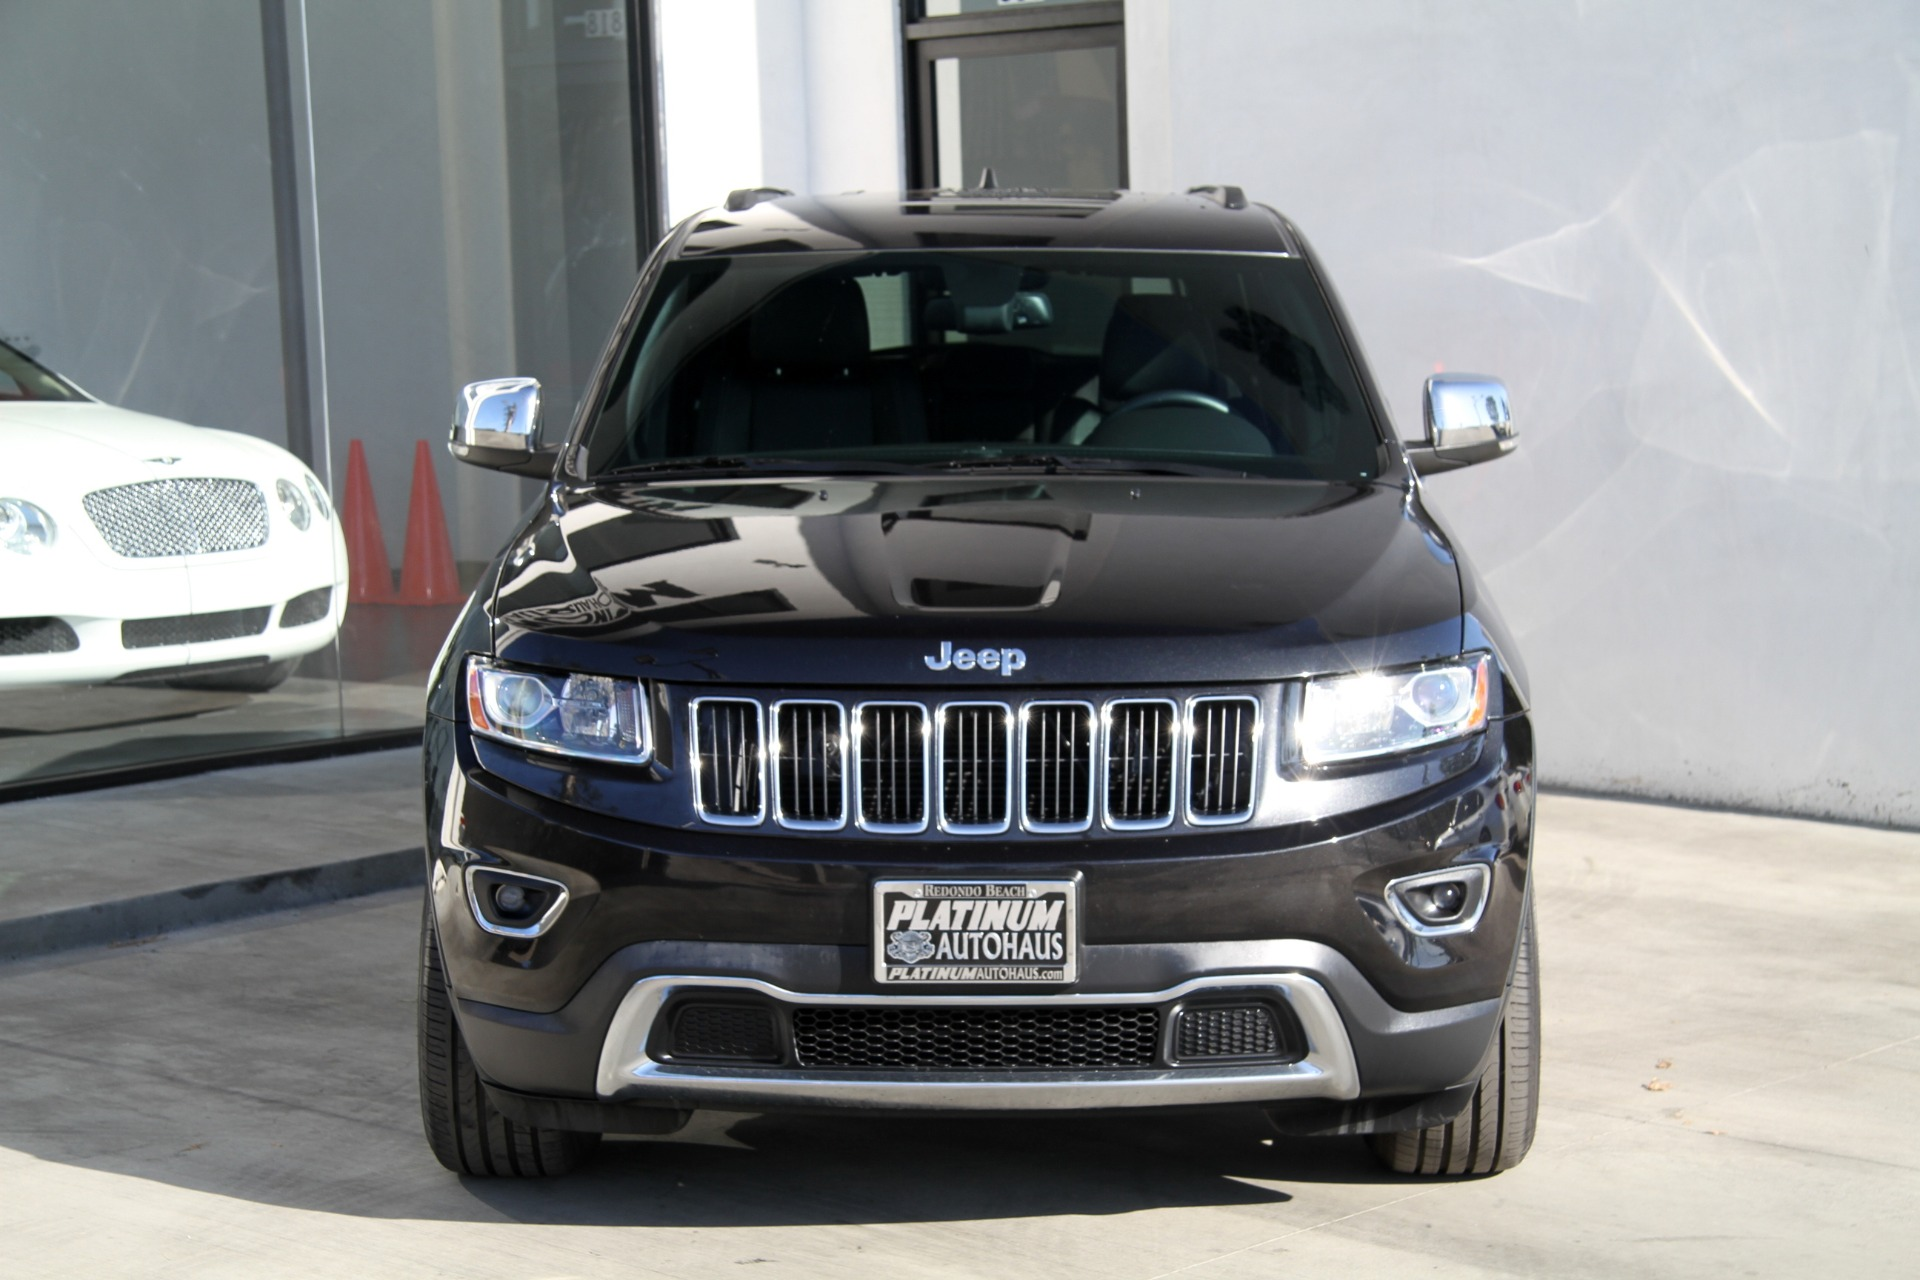 Jeep Grand Cherokee Used >> 2014 Jeep Grand Cherokee Limited Stock # 6010B for sale ...